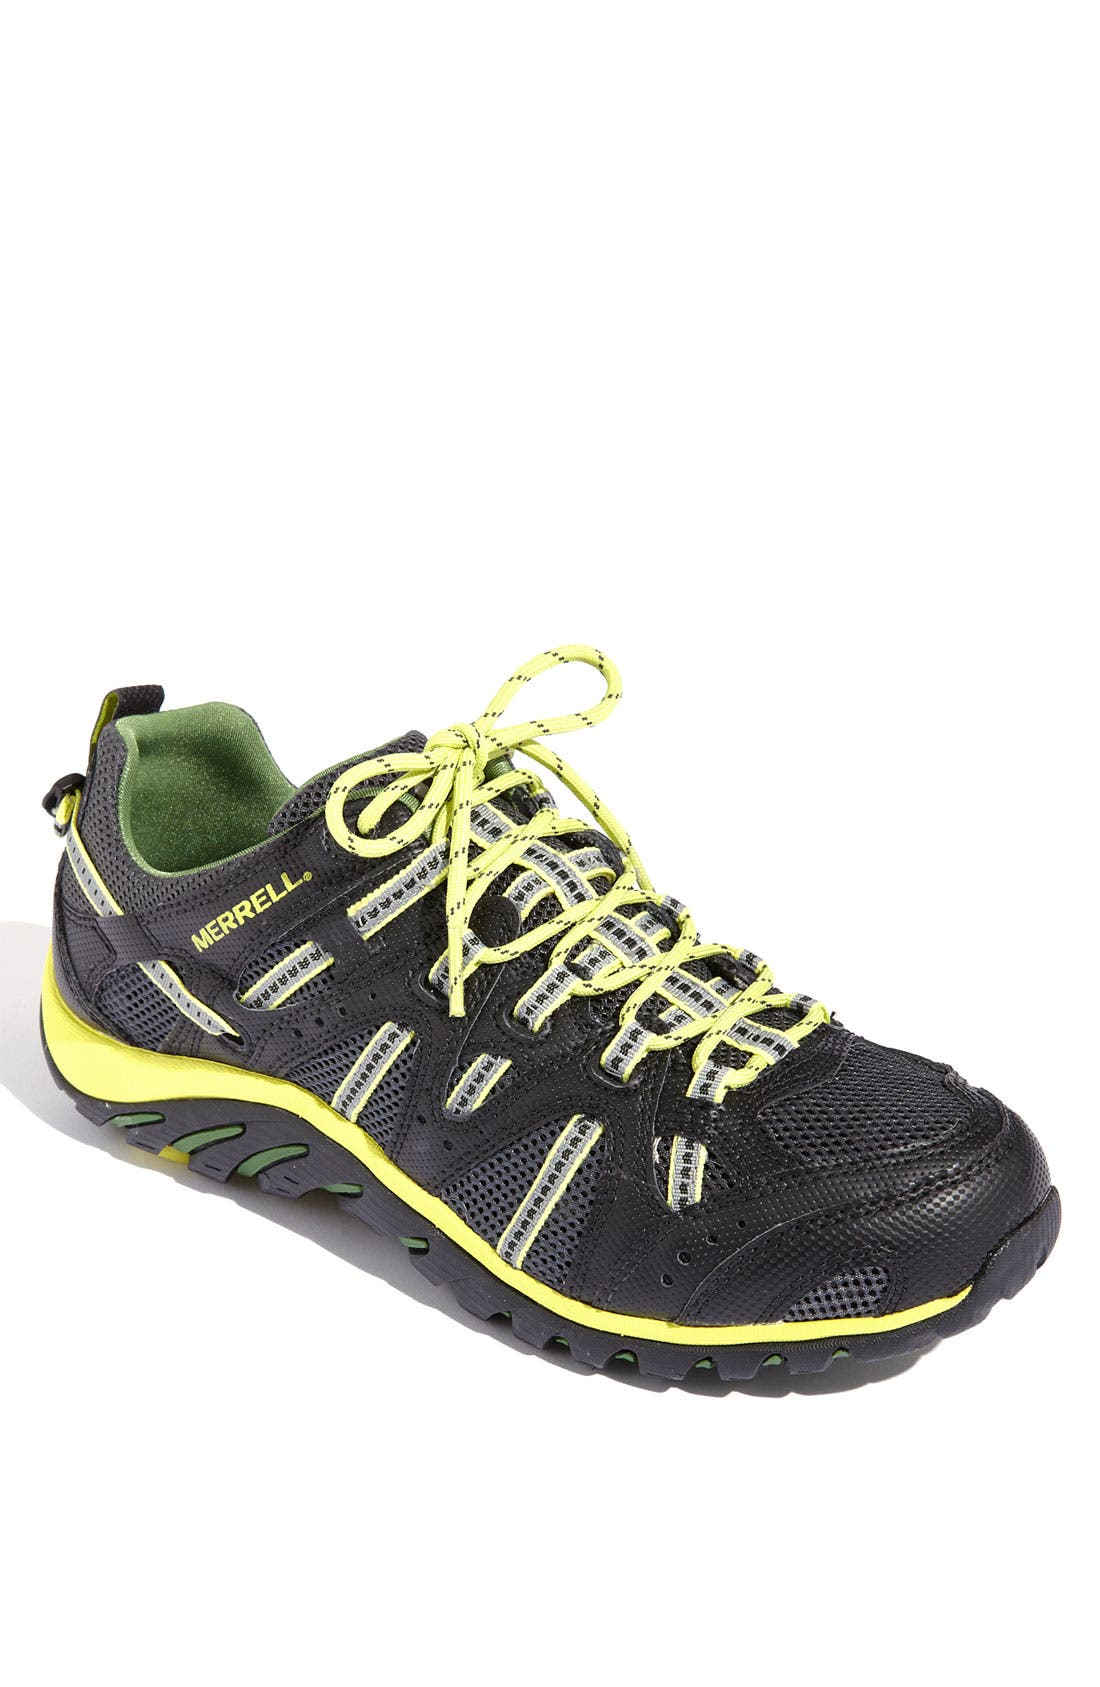 Main Image - Merrell 'Waterpro Manistee' Trail Shoe (Men)